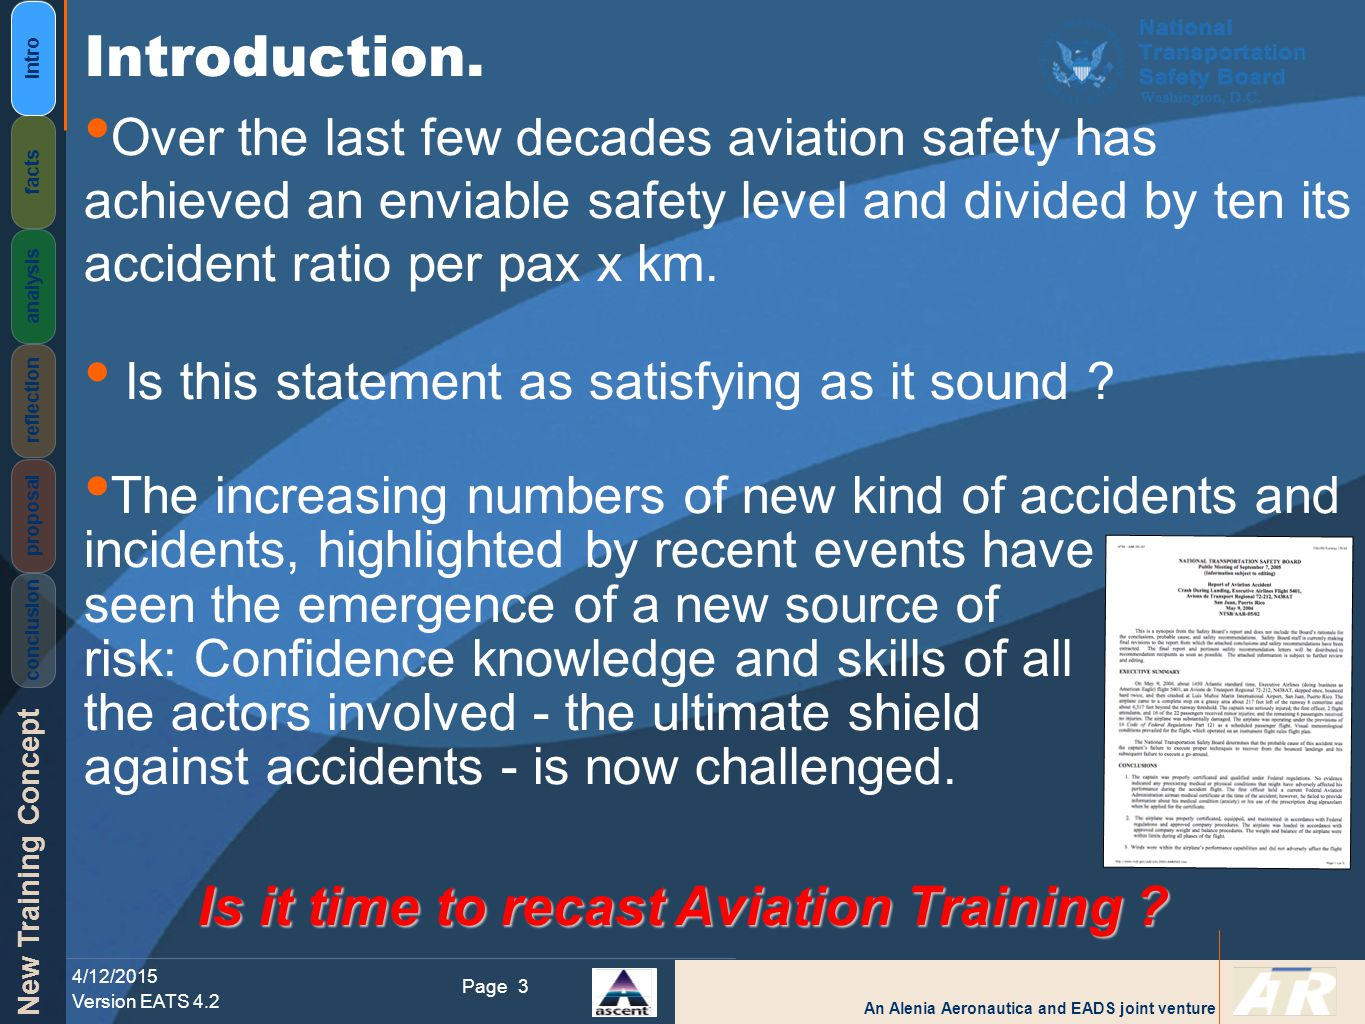 An Alenia Aeronautica and EADS joint venture New Training Concept 4/12/2015 Version EATS 4.2 Page Intro facts analysis reflection proposal conclusion 3 Over the last few decades aviation safety has achieved an enviable safety level and divided by ten its accident ratio per pax x km.